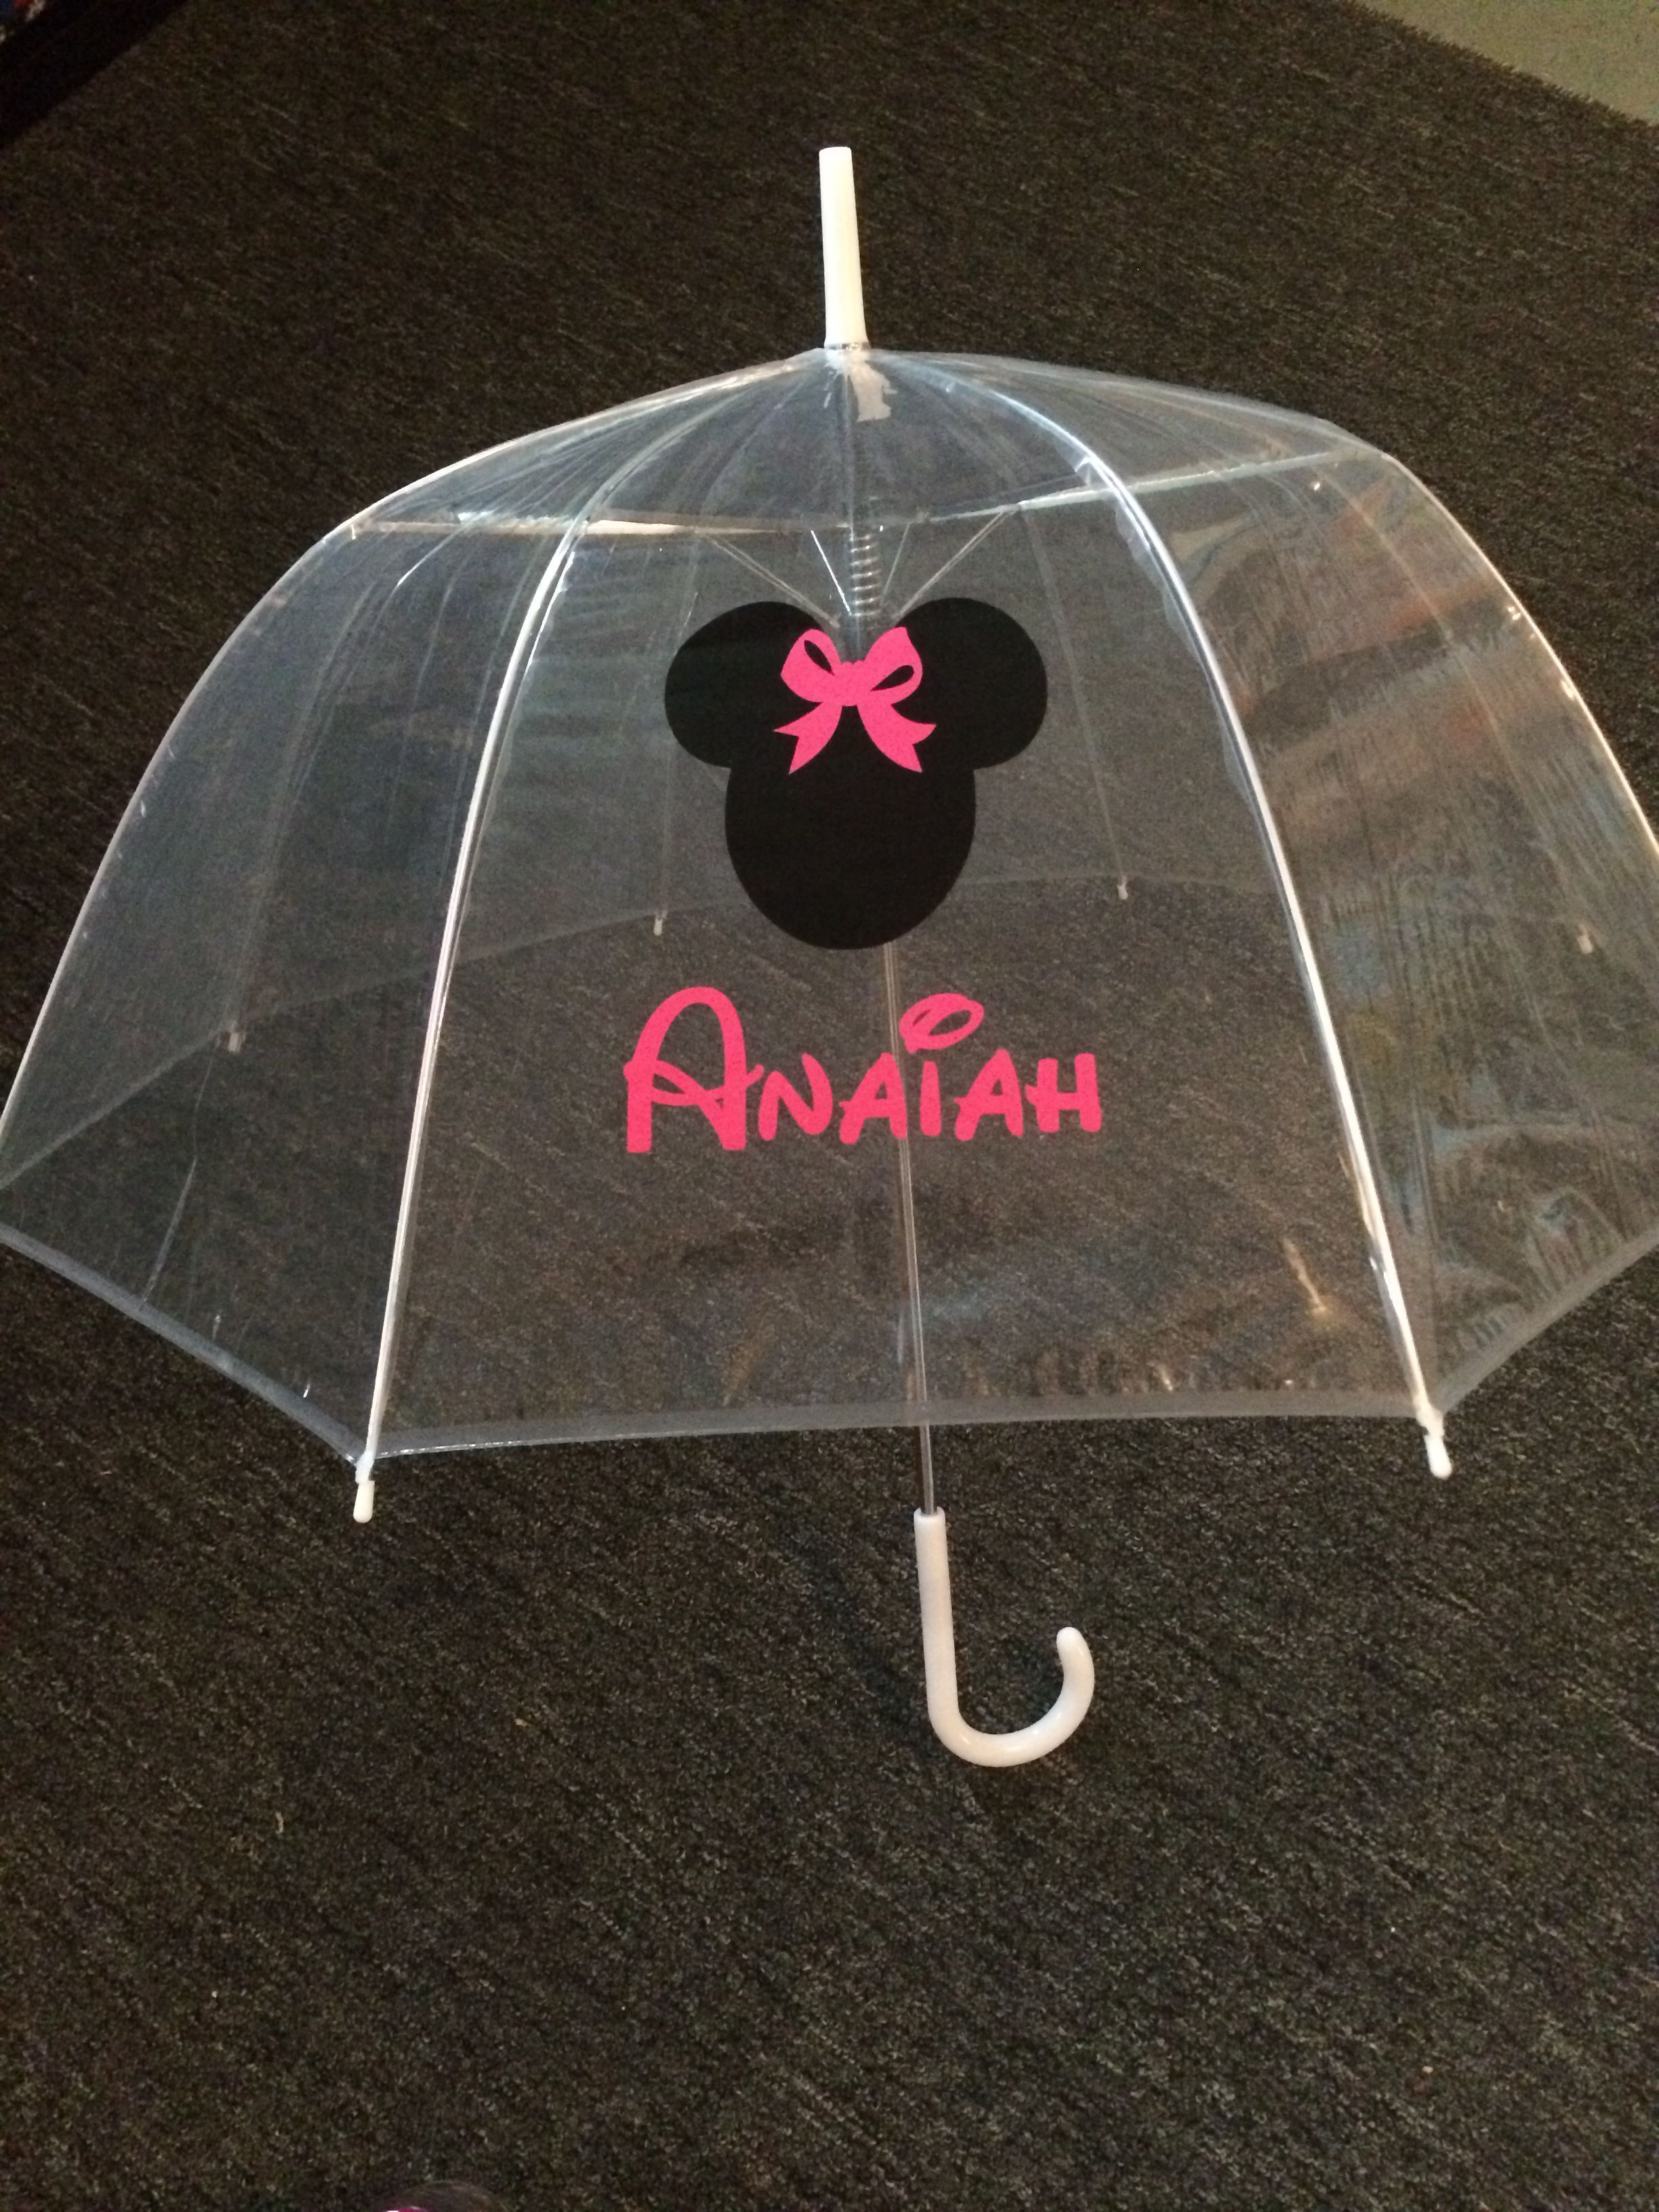 Minnie Mouse clear umbrella vinyl monogram #clearumbrella Minnie Mouse clear umbrella vinyl monogram #clearumbrella Minnie Mouse clear umbrella vinyl monogram #clearumbrella Minnie Mouse clear umbrella vinyl monogram #clearumbrella Minnie Mouse clear umbrella vinyl monogram #clearumbrella Minnie Mouse clear umbrella vinyl monogram #clearumbrella Minnie Mouse clear umbrella vinyl monogram #clearumbrella Minnie Mouse clear umbrella vinyl monogram #clearumbrella